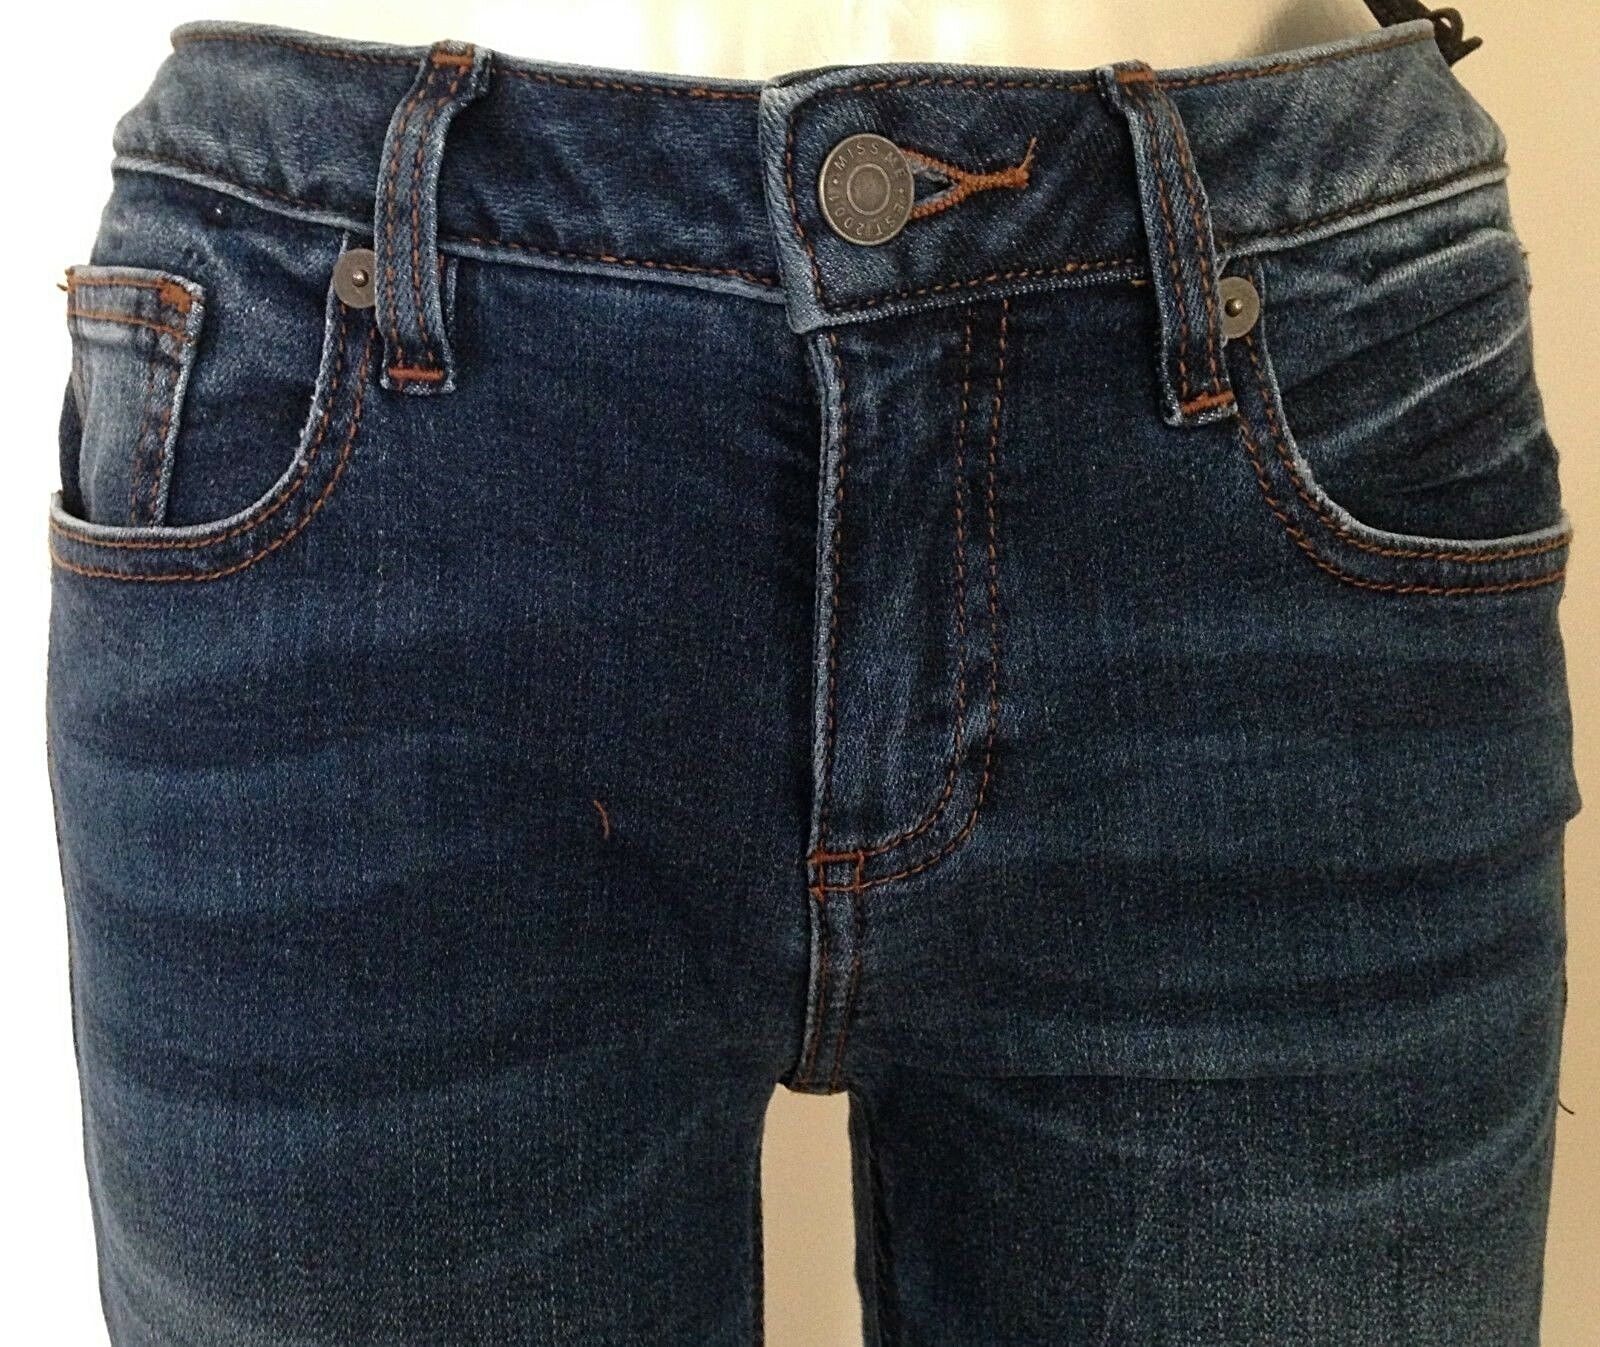 MISS ME JEANS NEW WITH TAG 1001S38 SLIM SKINNY INSEAM 29